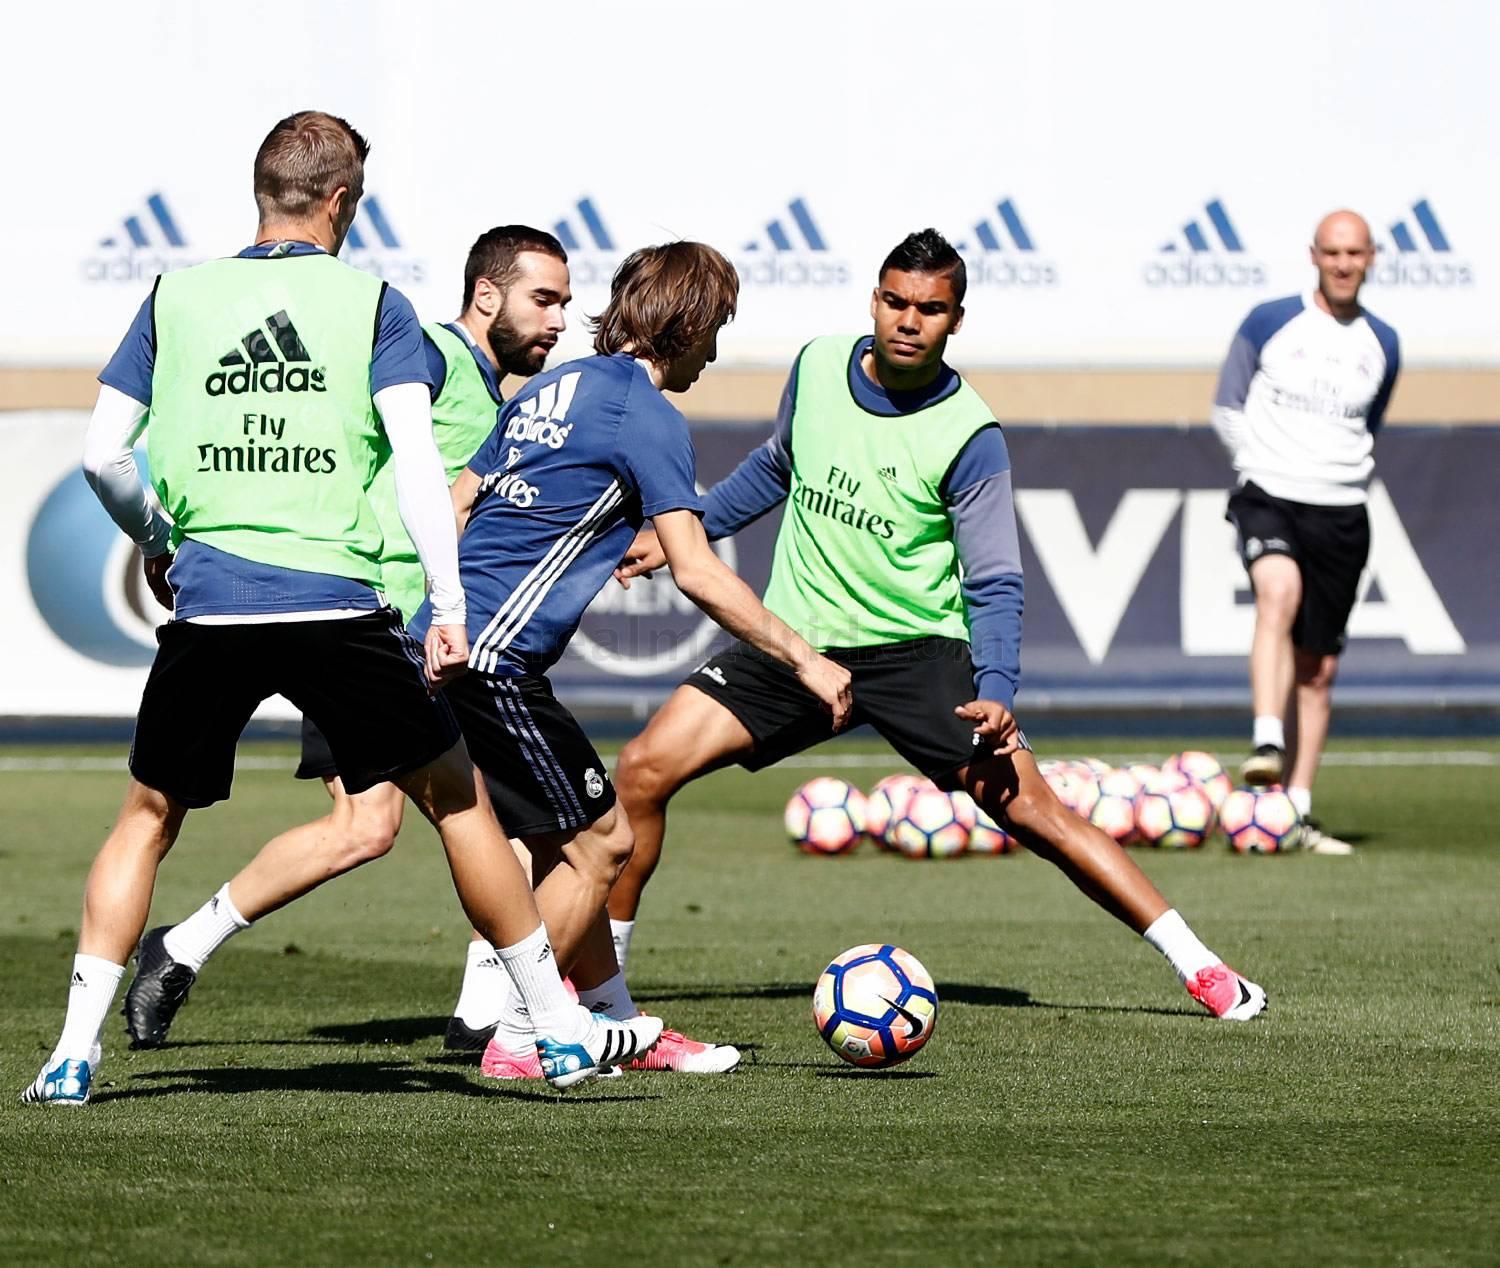 Real Madrid - Entrenamiento del Real Madrid - 21-04-2017